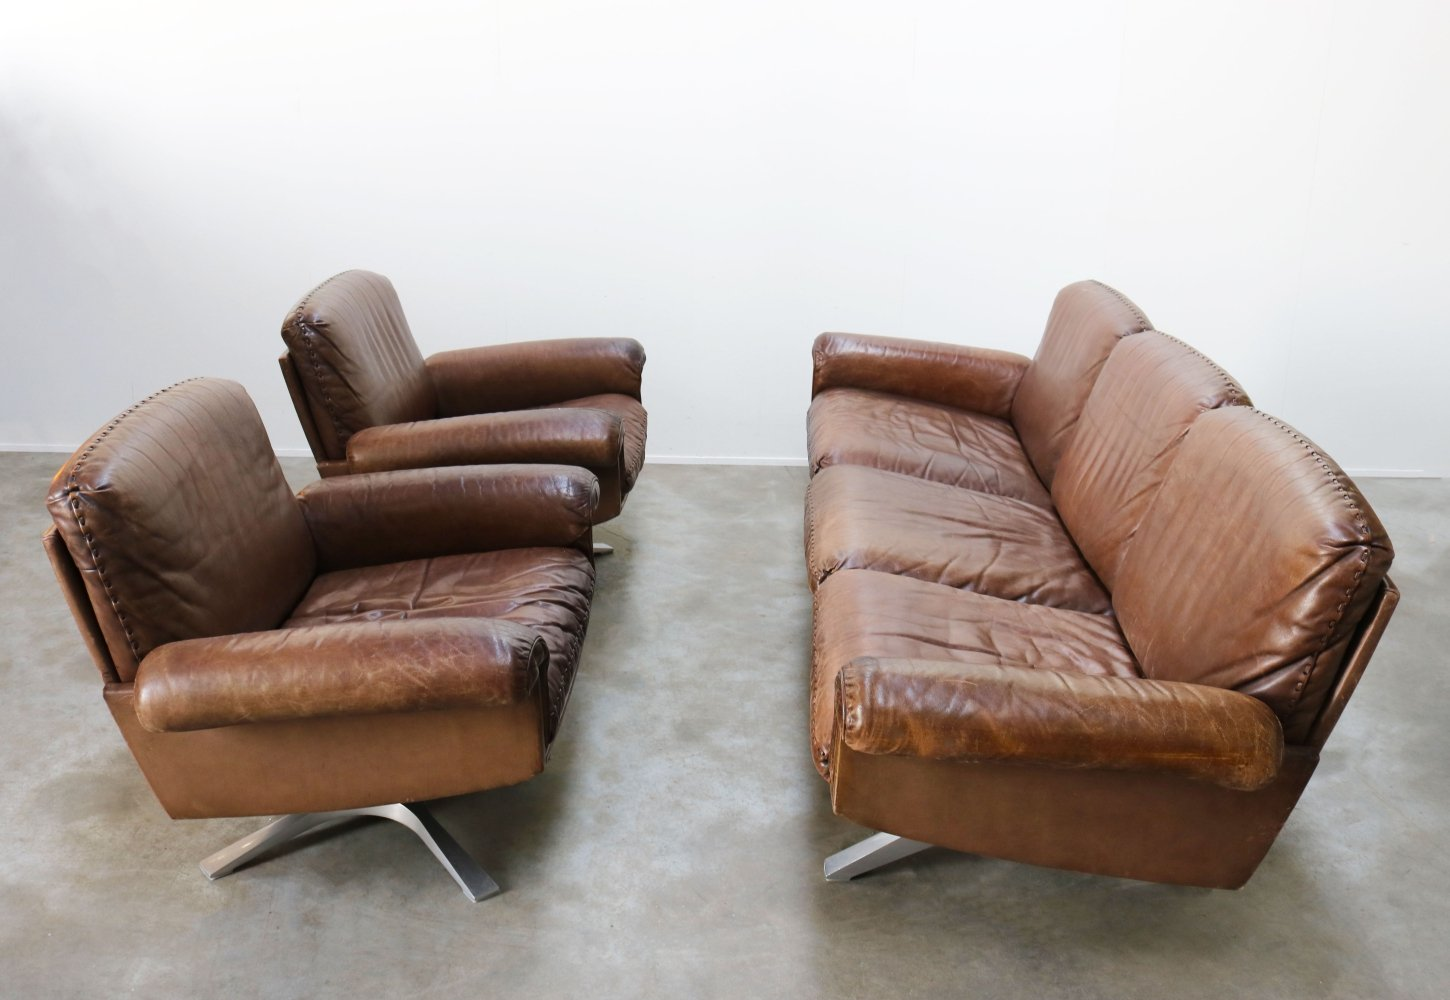 Swiss design leather DS-31 Seating group / Living room set by De Sede, 1970